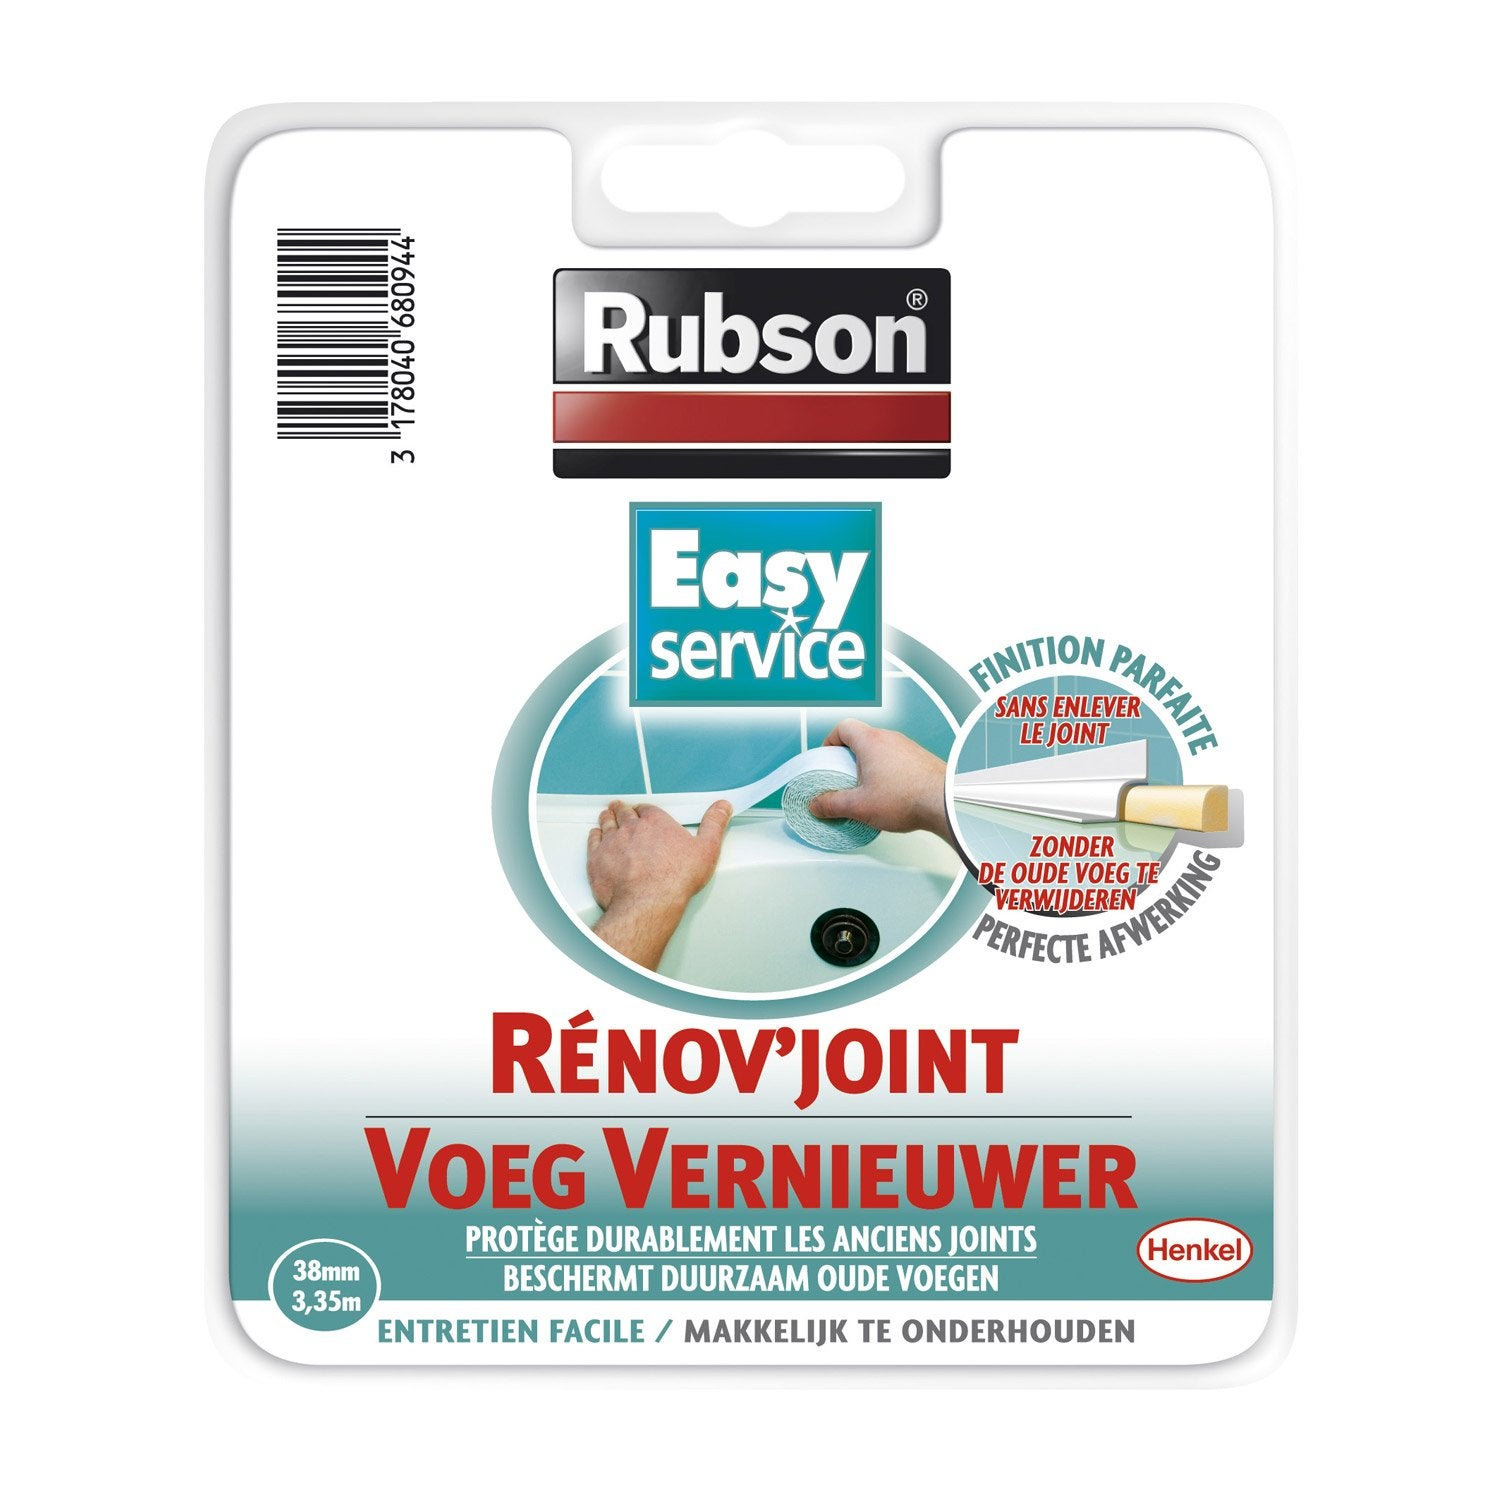 Free Enlever Joint Baignoire With Enlever Joint Baignoire.